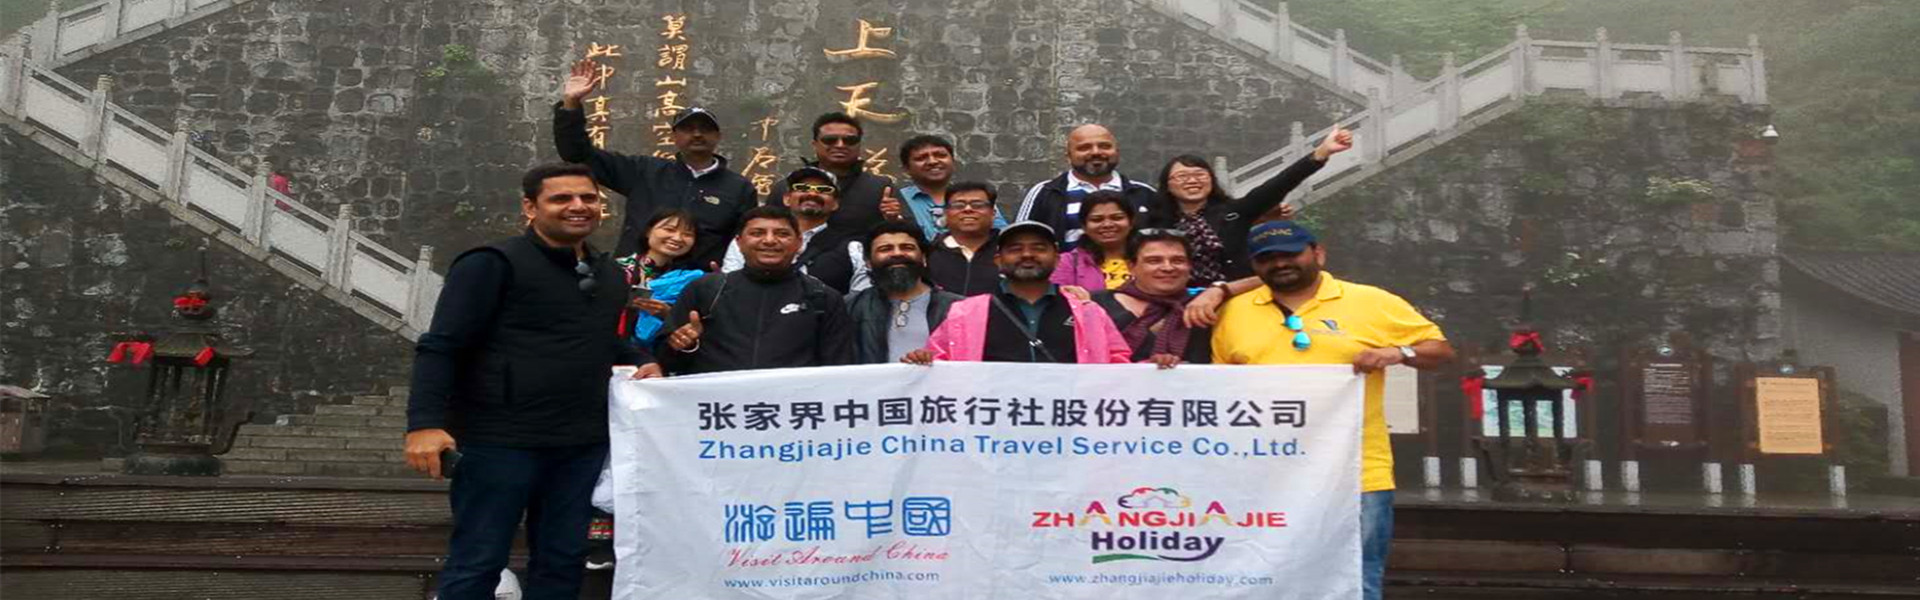 6 Days Zhangjiajie tour from Mubai or Delhi,India